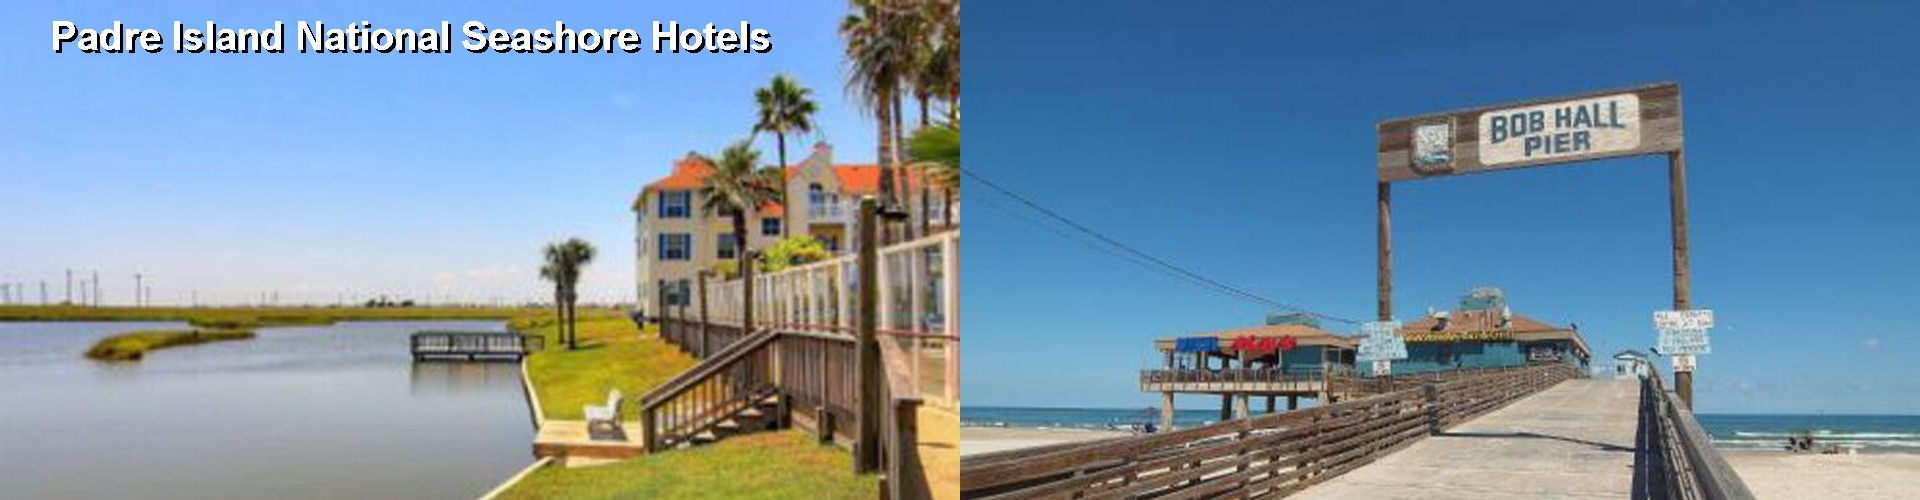 5 Best Hotels near Padre Island National Seashore